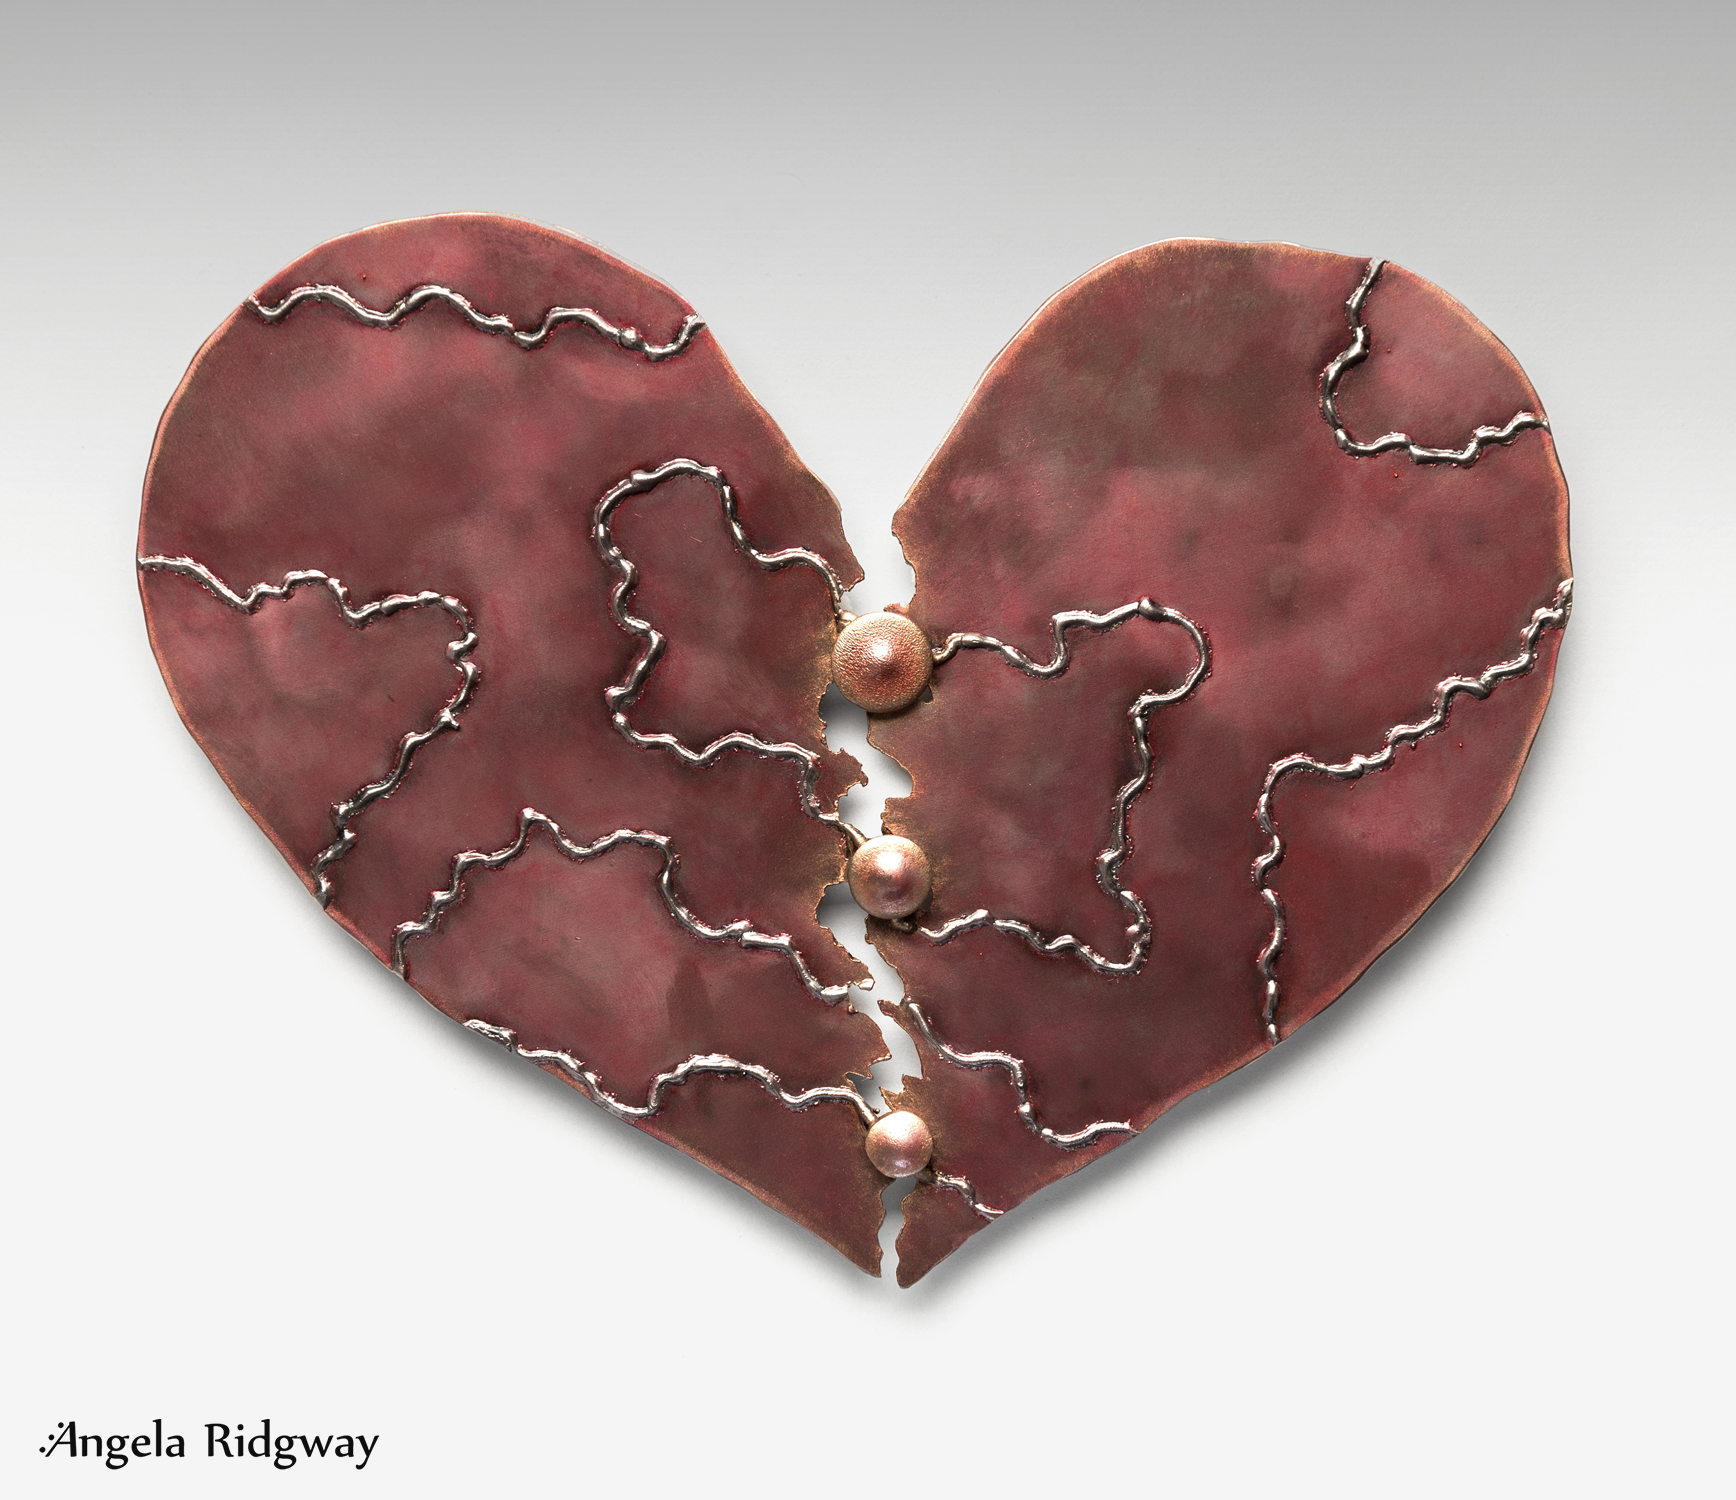 connections help heal your broken heart 1 crop logo 150dpi.jpg